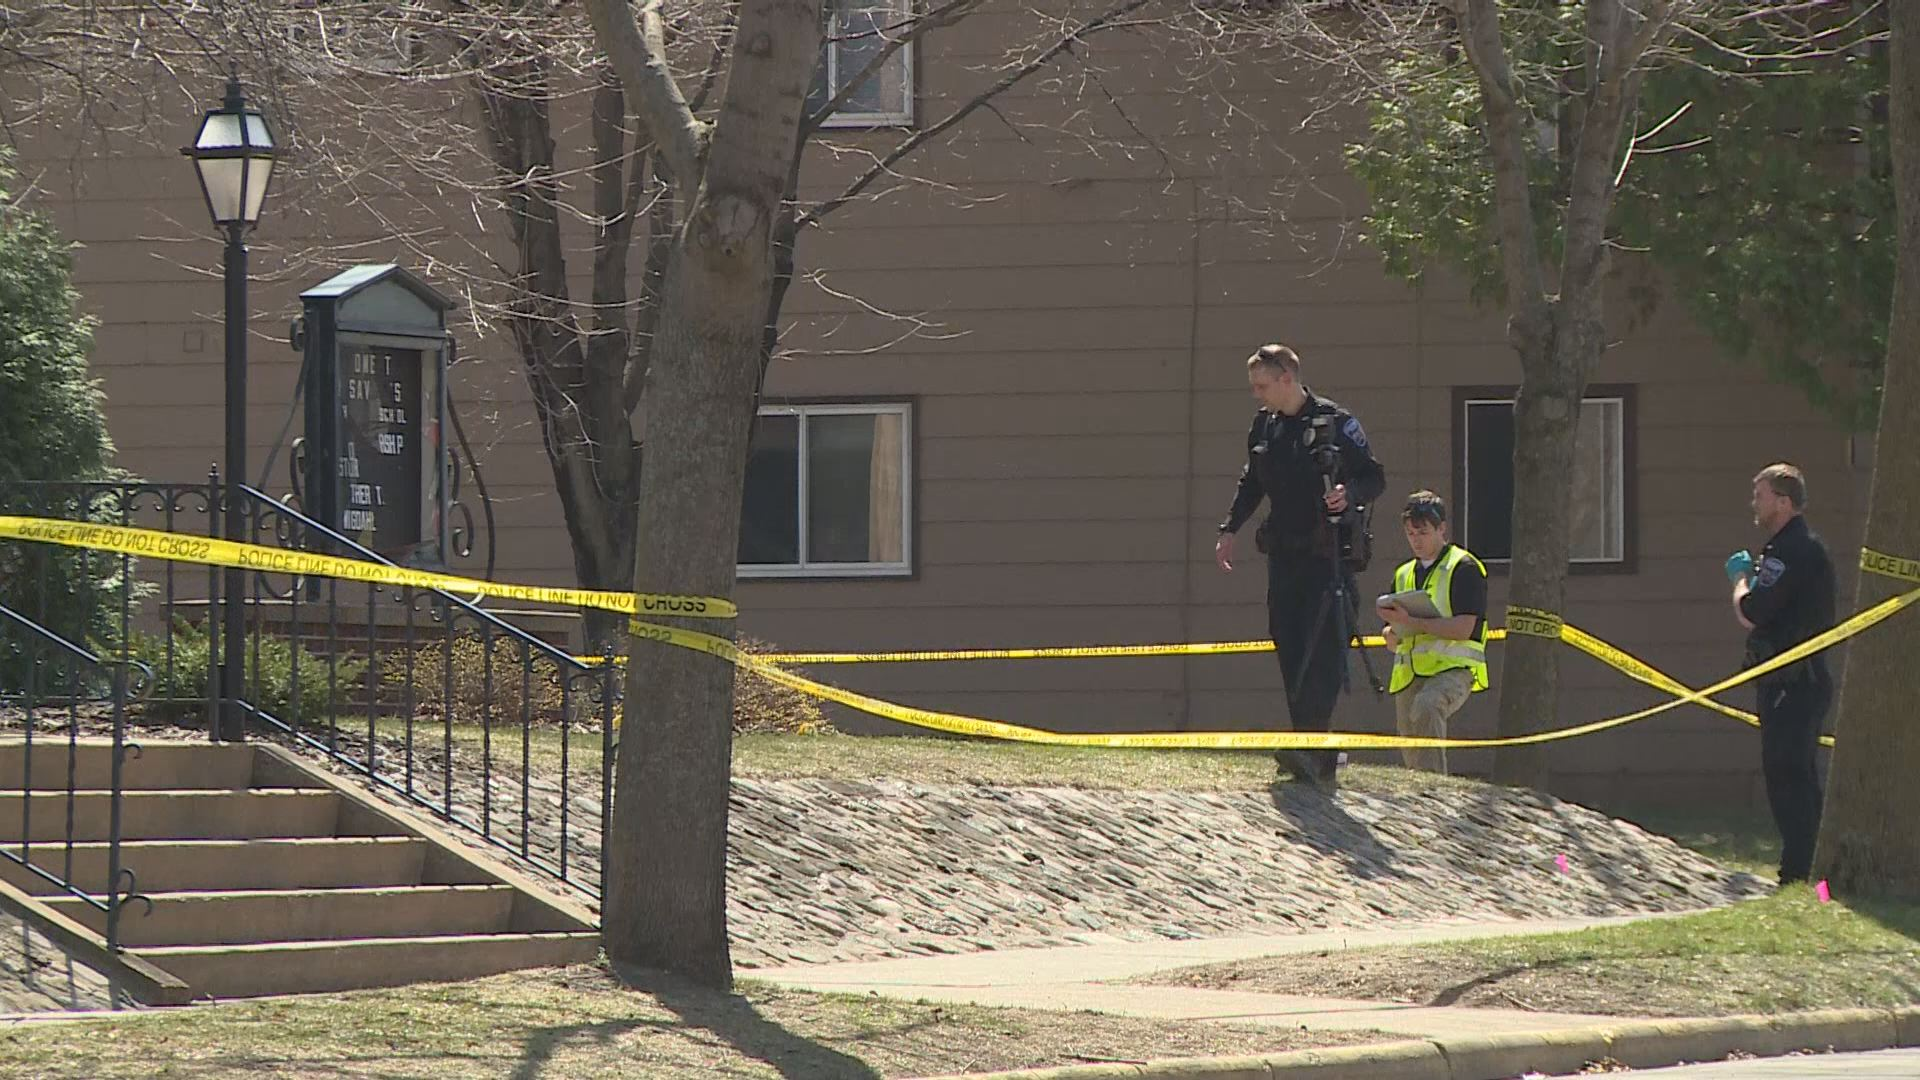 uwstout student found dead on driveway kare11com